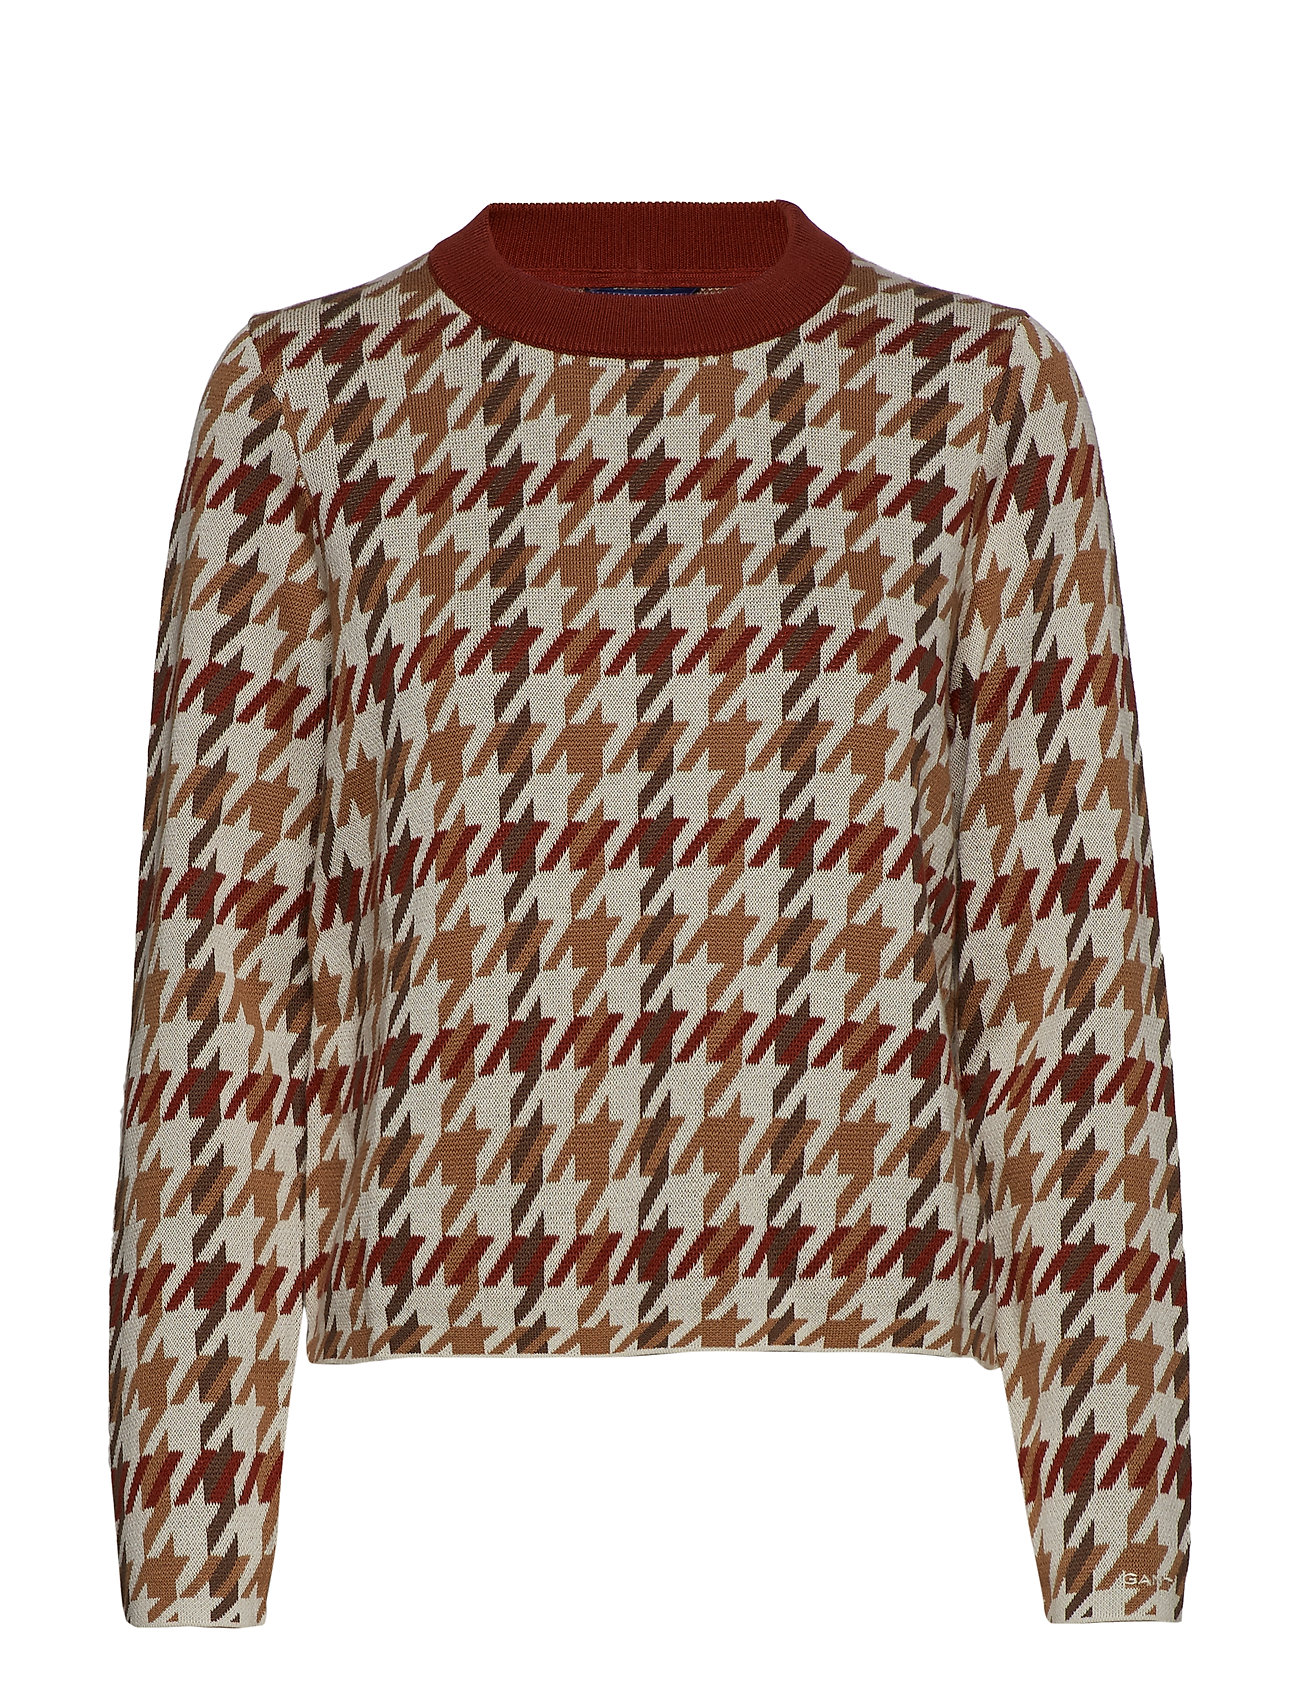 GANT D1. CHECKED PATTERNED CREW - ALL OVER PRINT